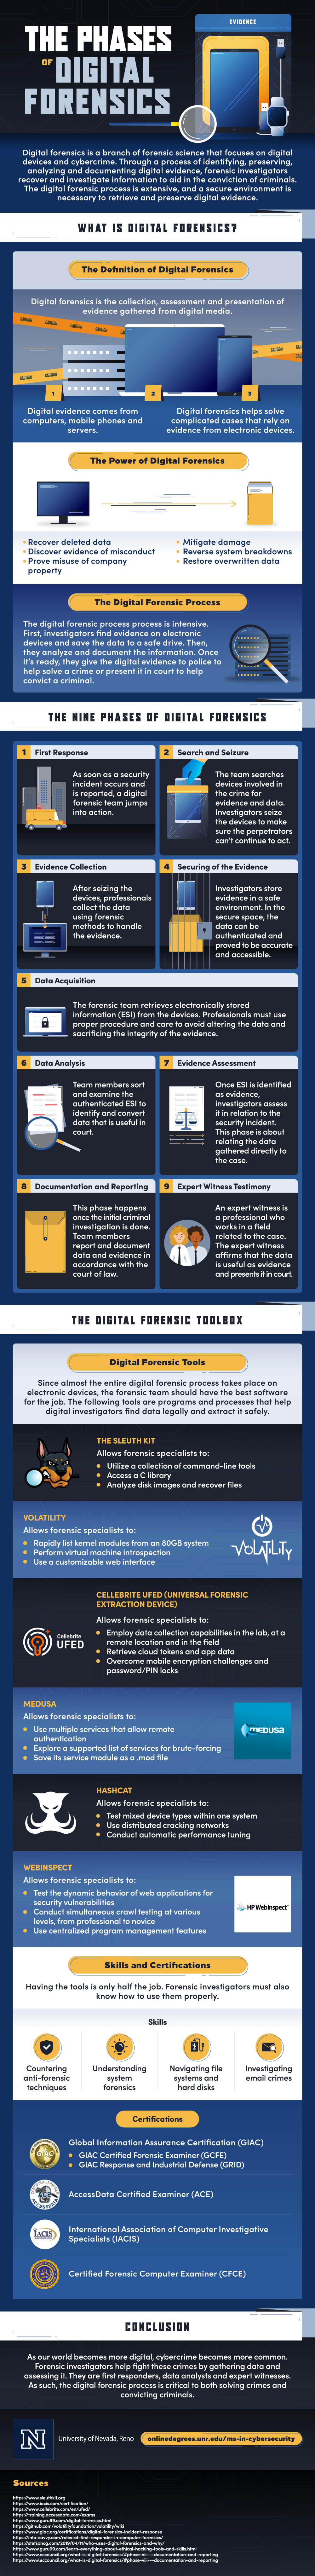 The phases of digital forensics.